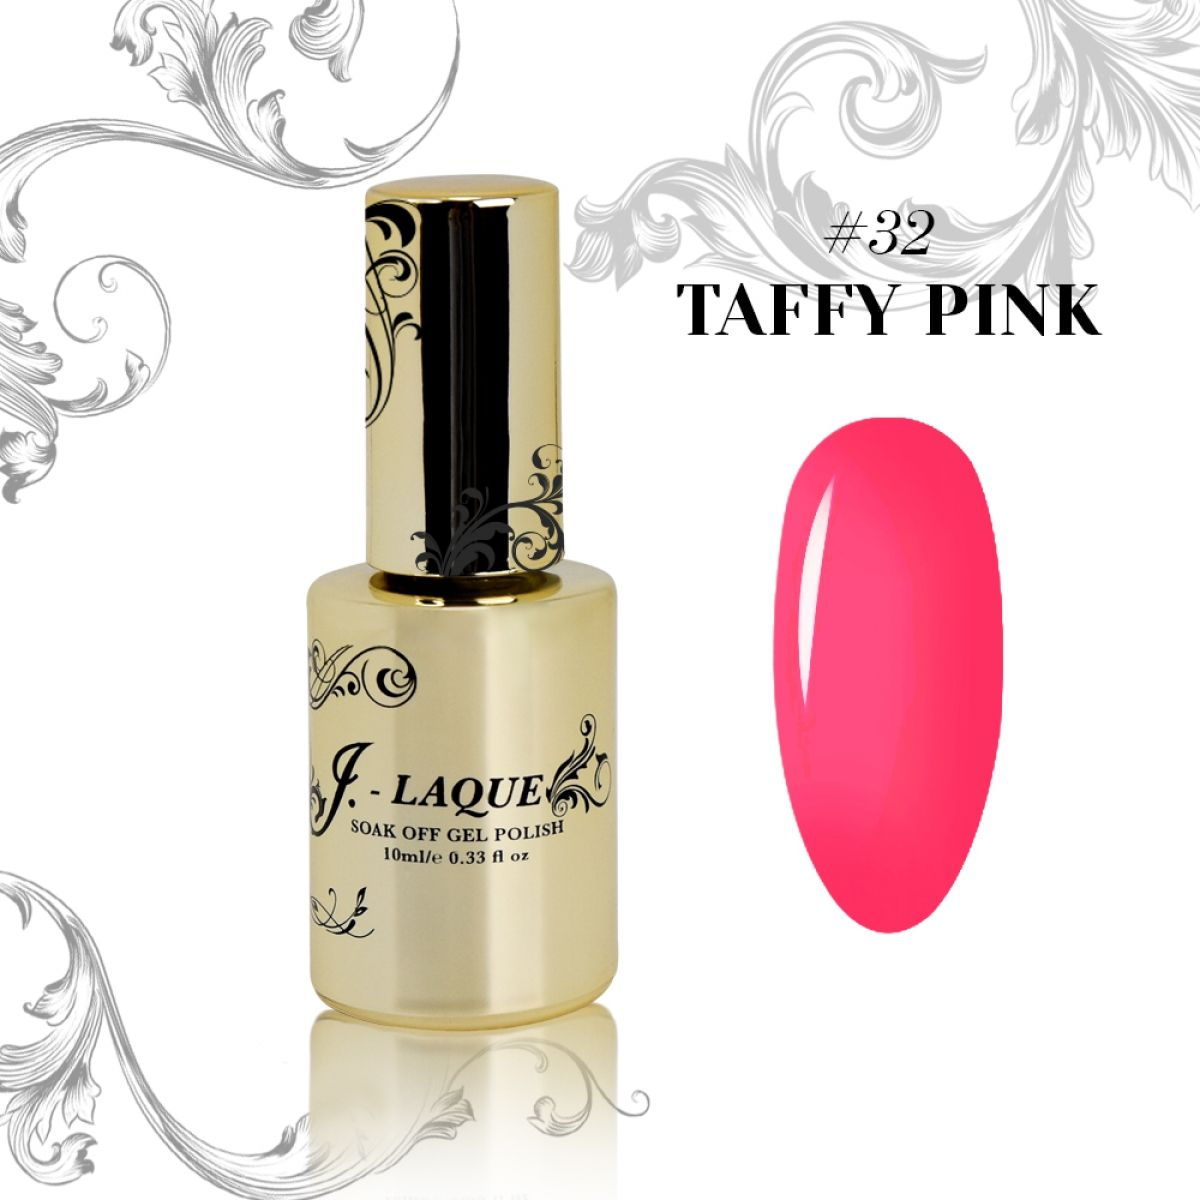 J-laque 32 Taffy Pink